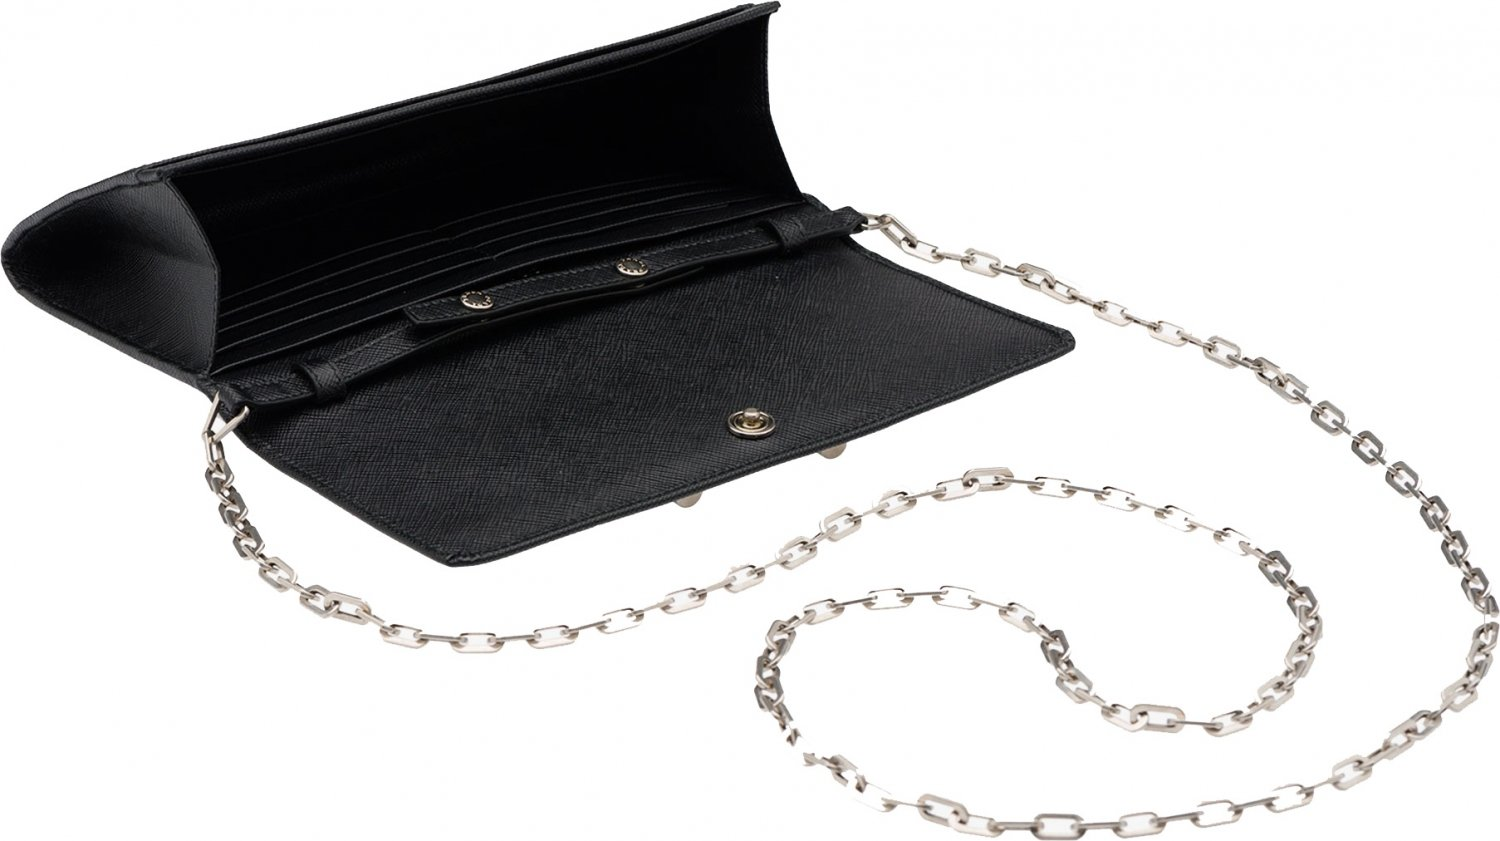 pada bag - Prada Saffiano Lock Leather Flap Wallet on Chain | Bragmybag